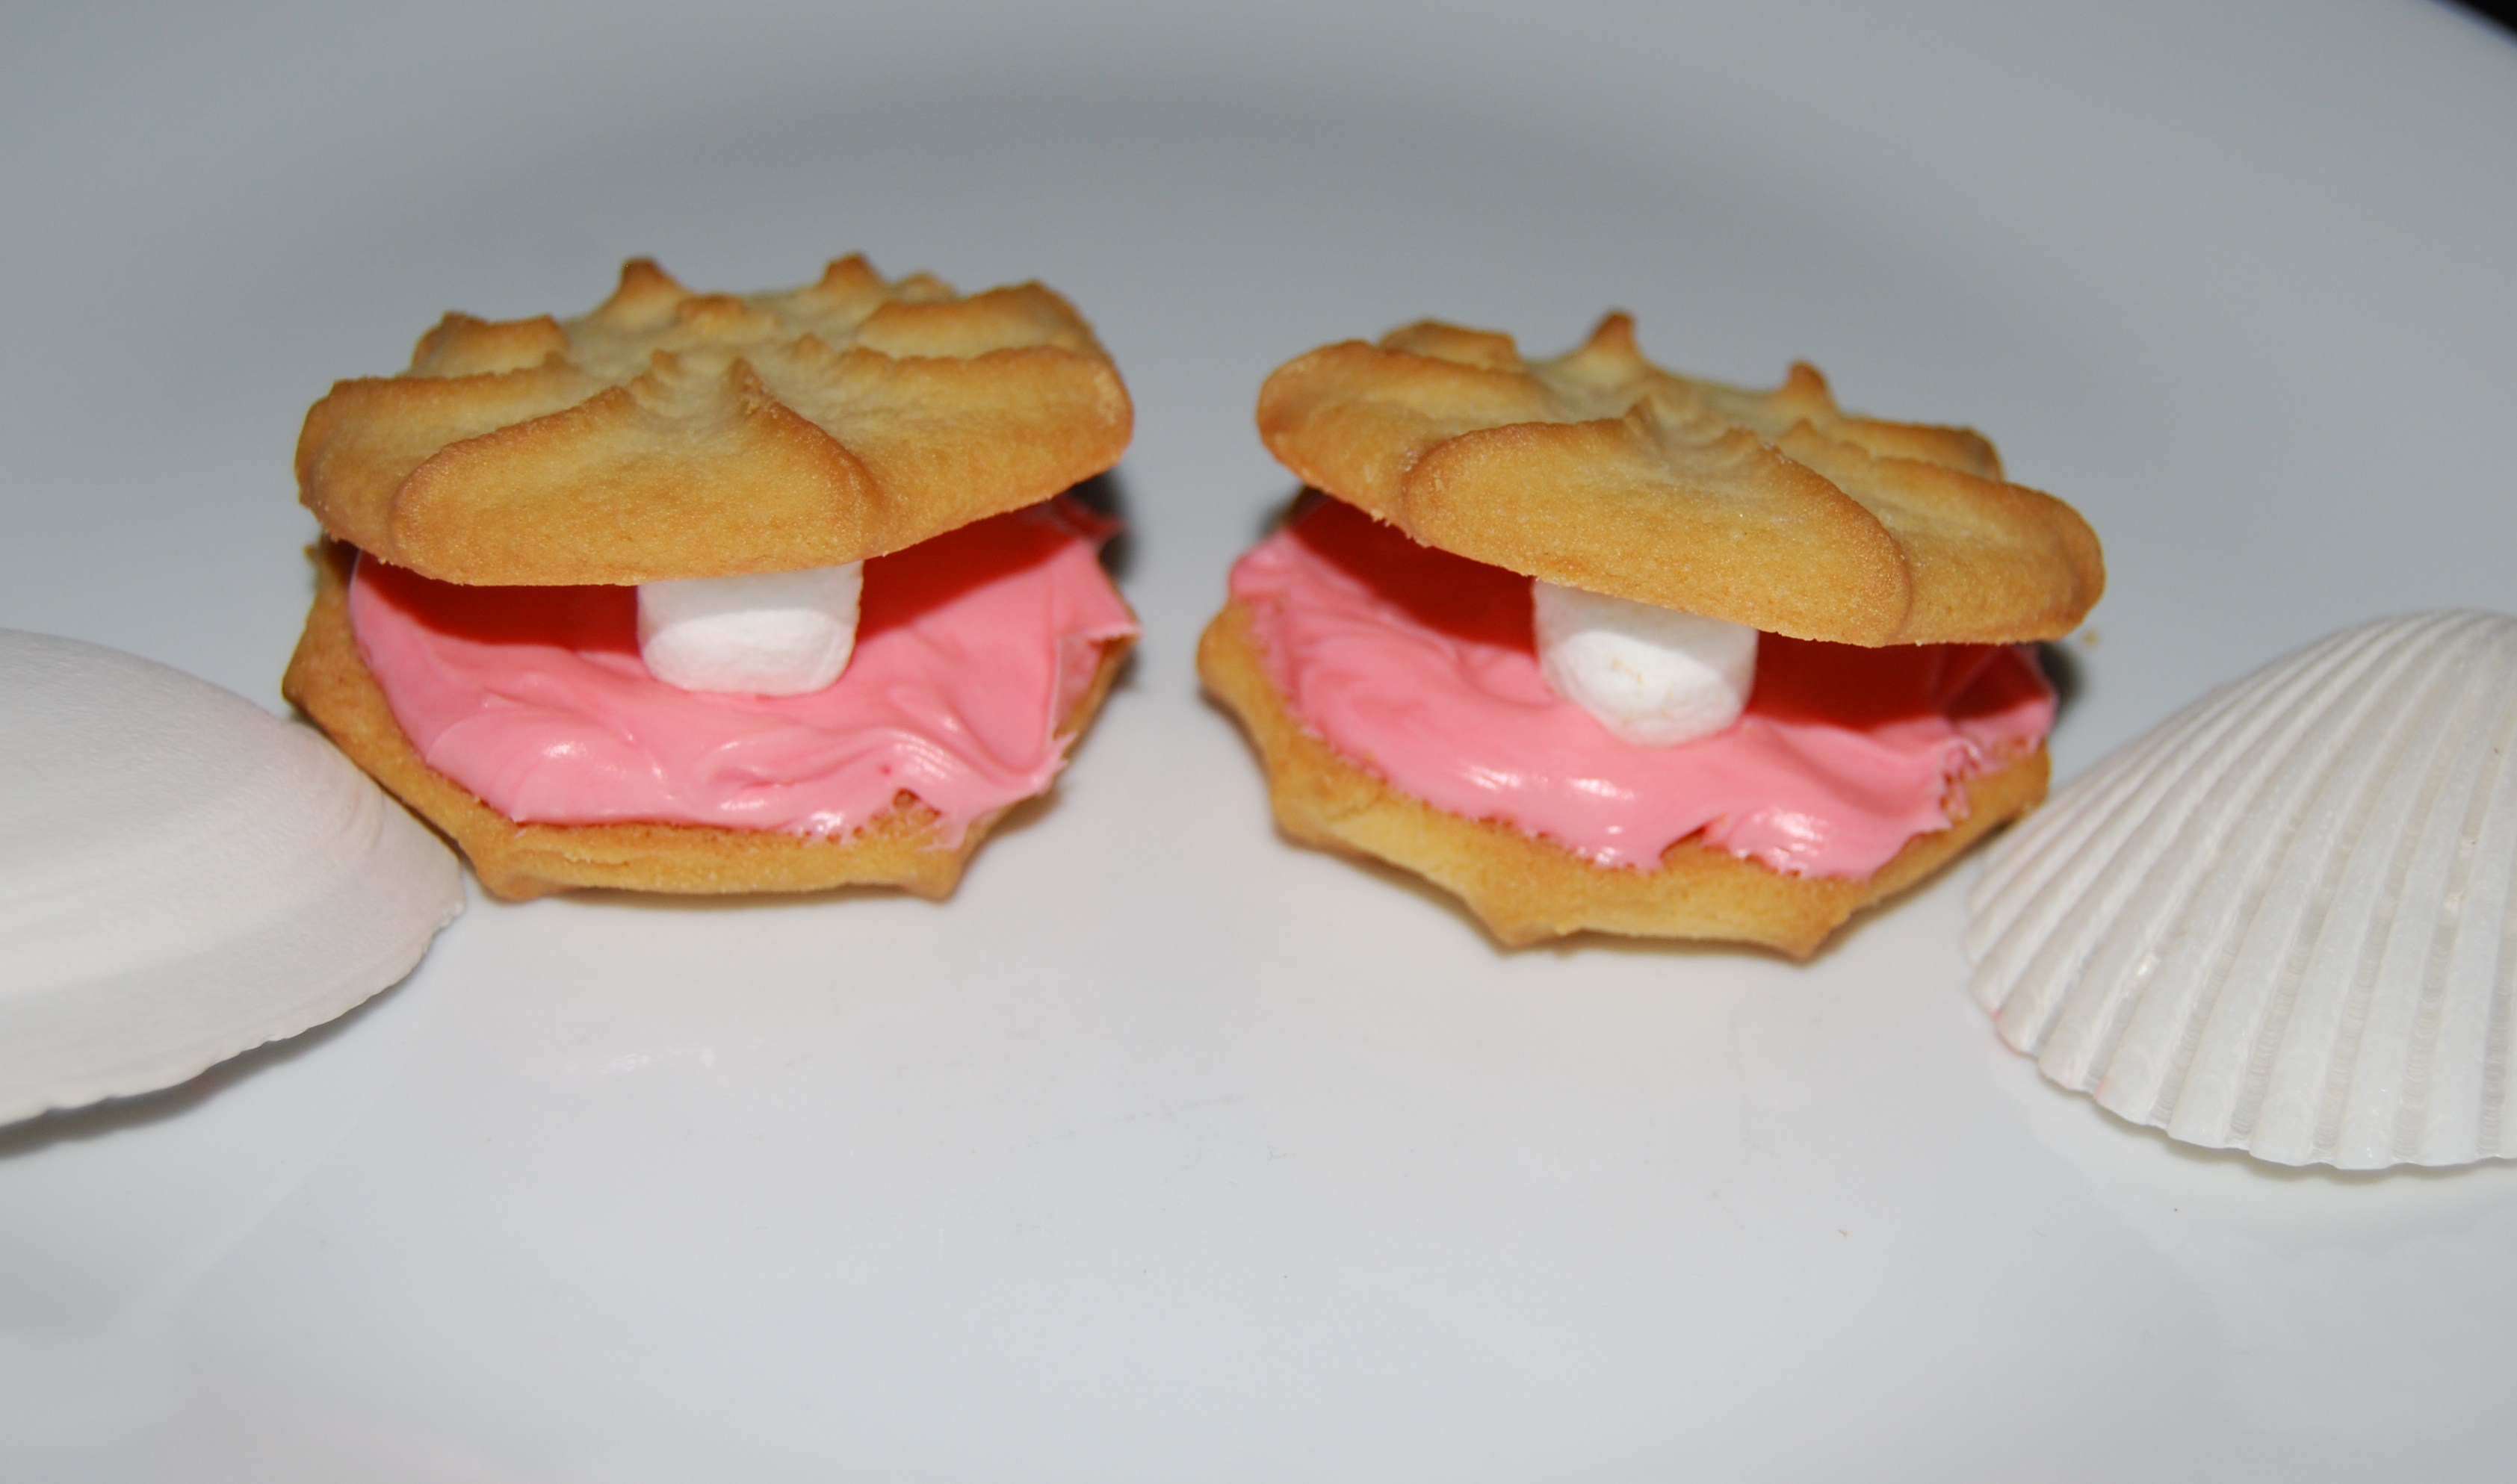 Oyster And Pearl Cookie Snack The Preschool Toolbox Blog